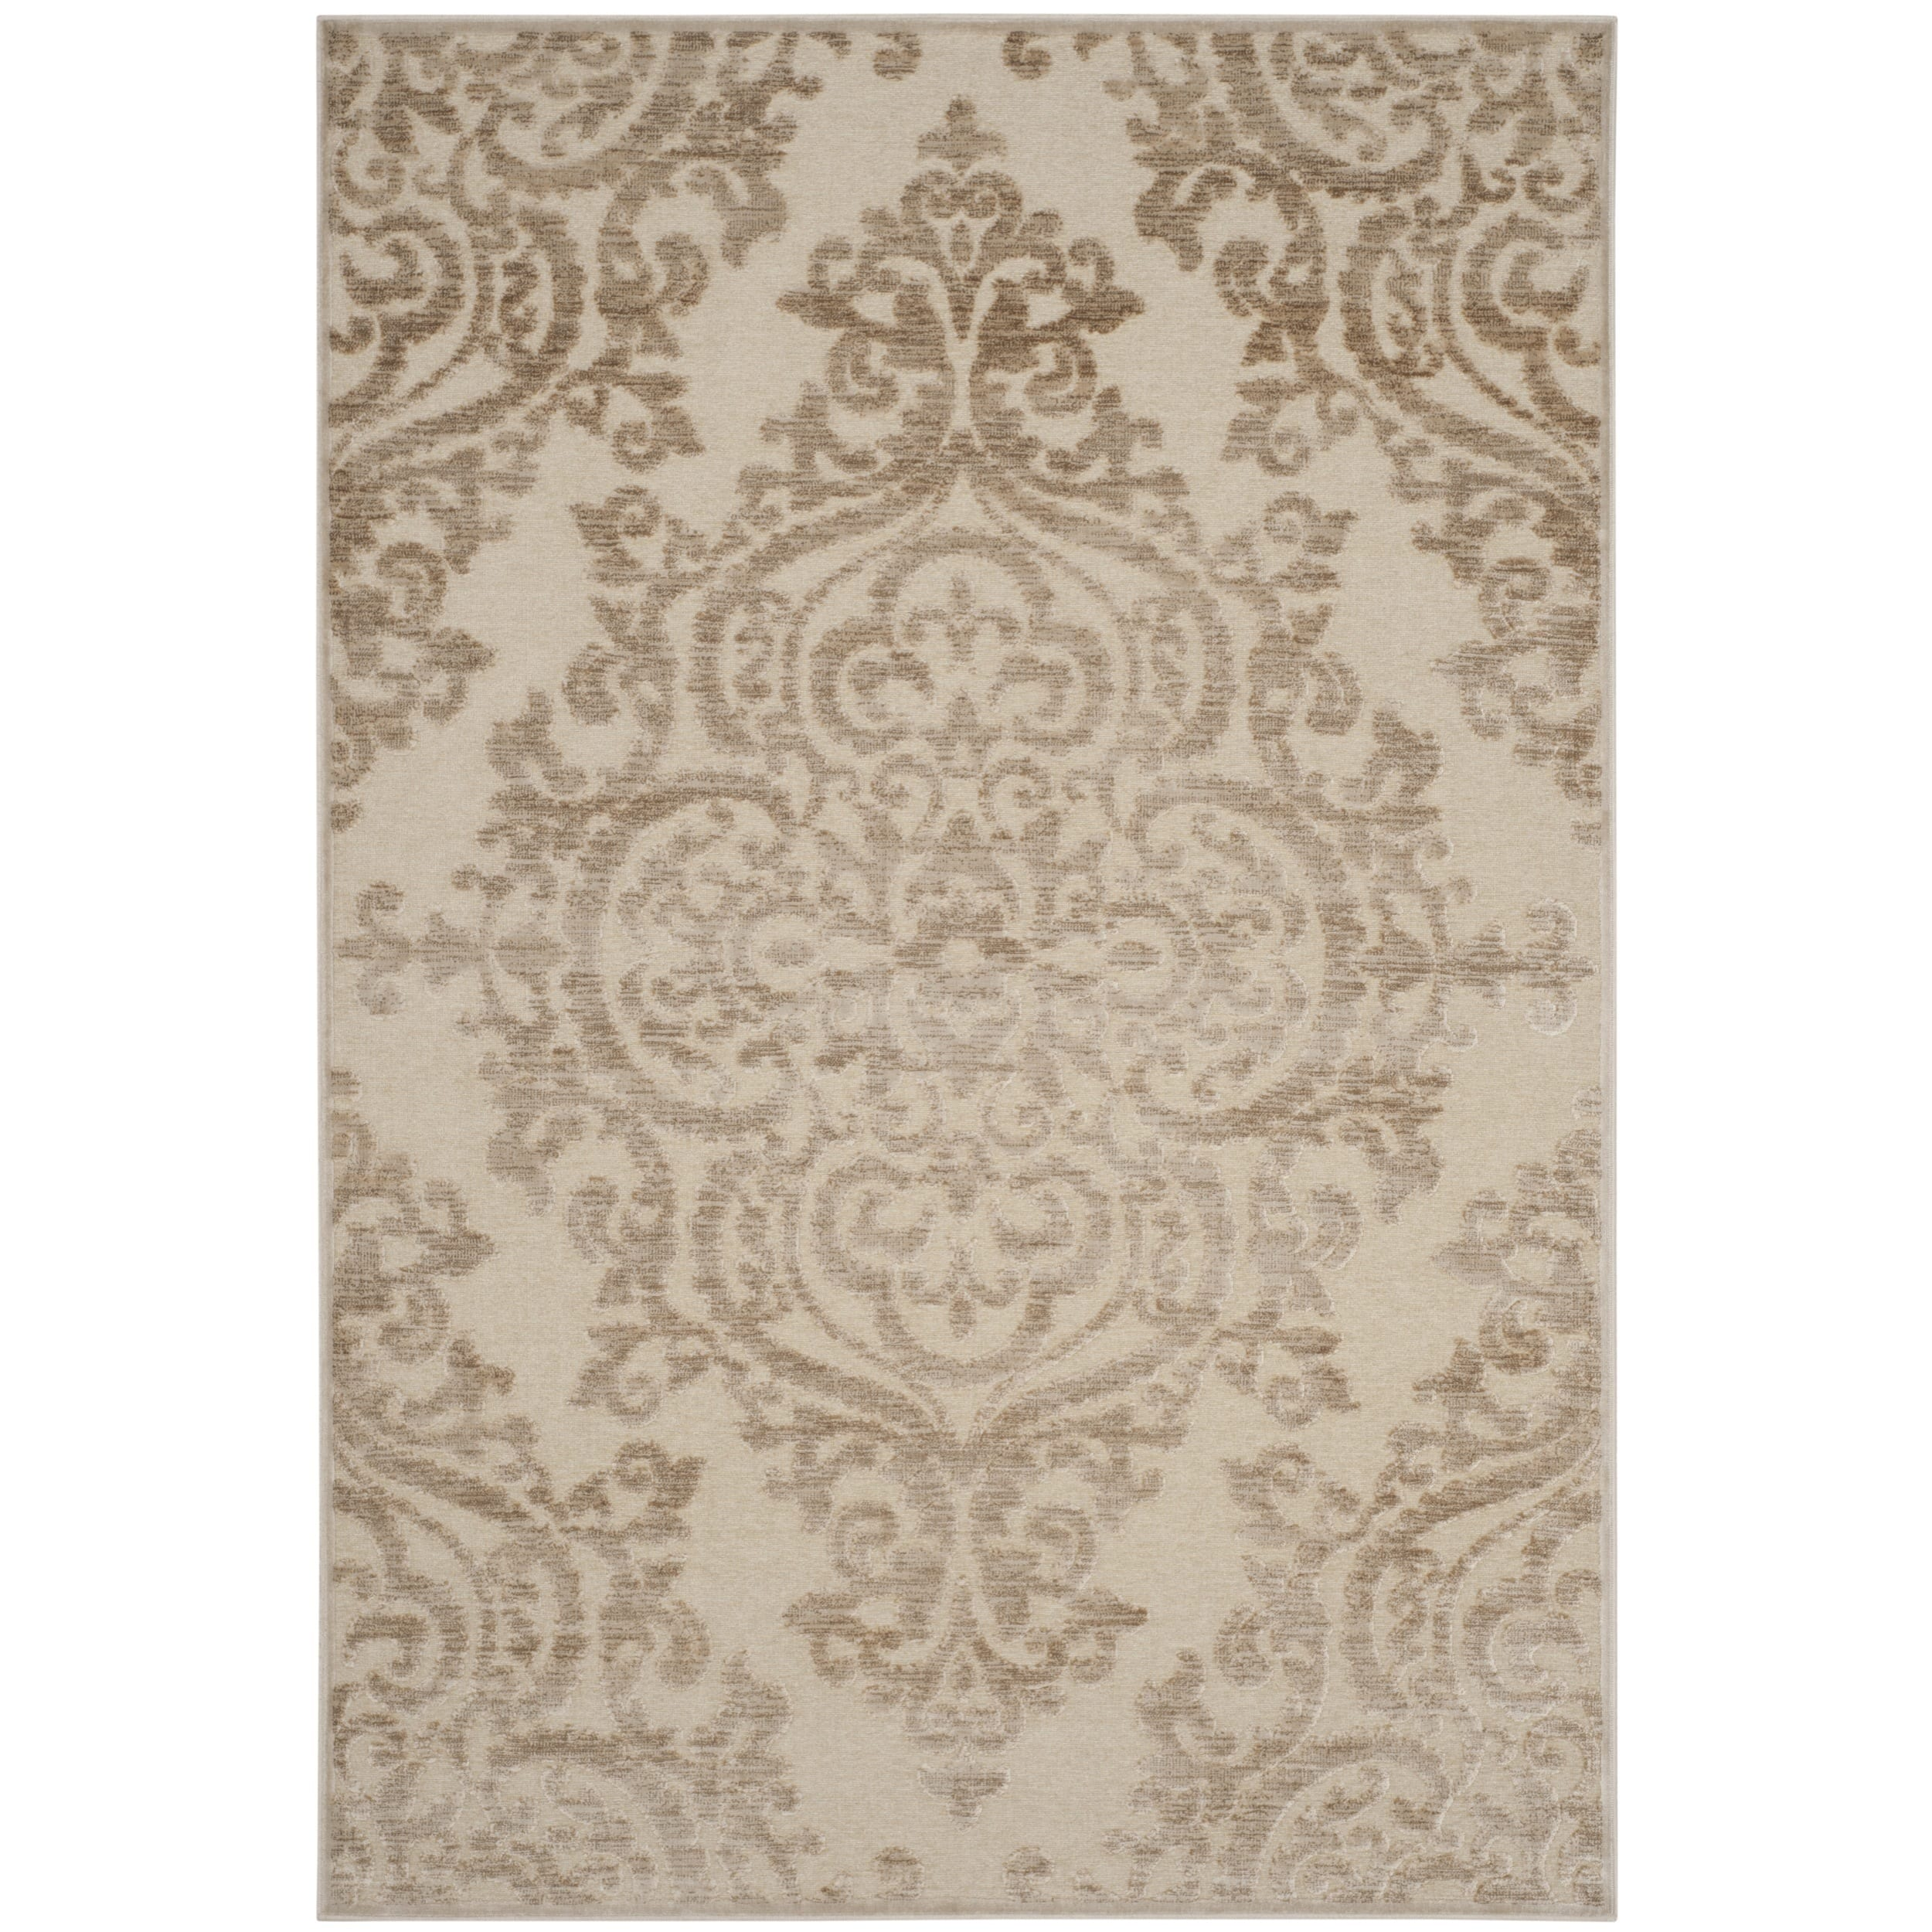 Buy 7x9 10x14 rugs online at our best for Best selling rugs